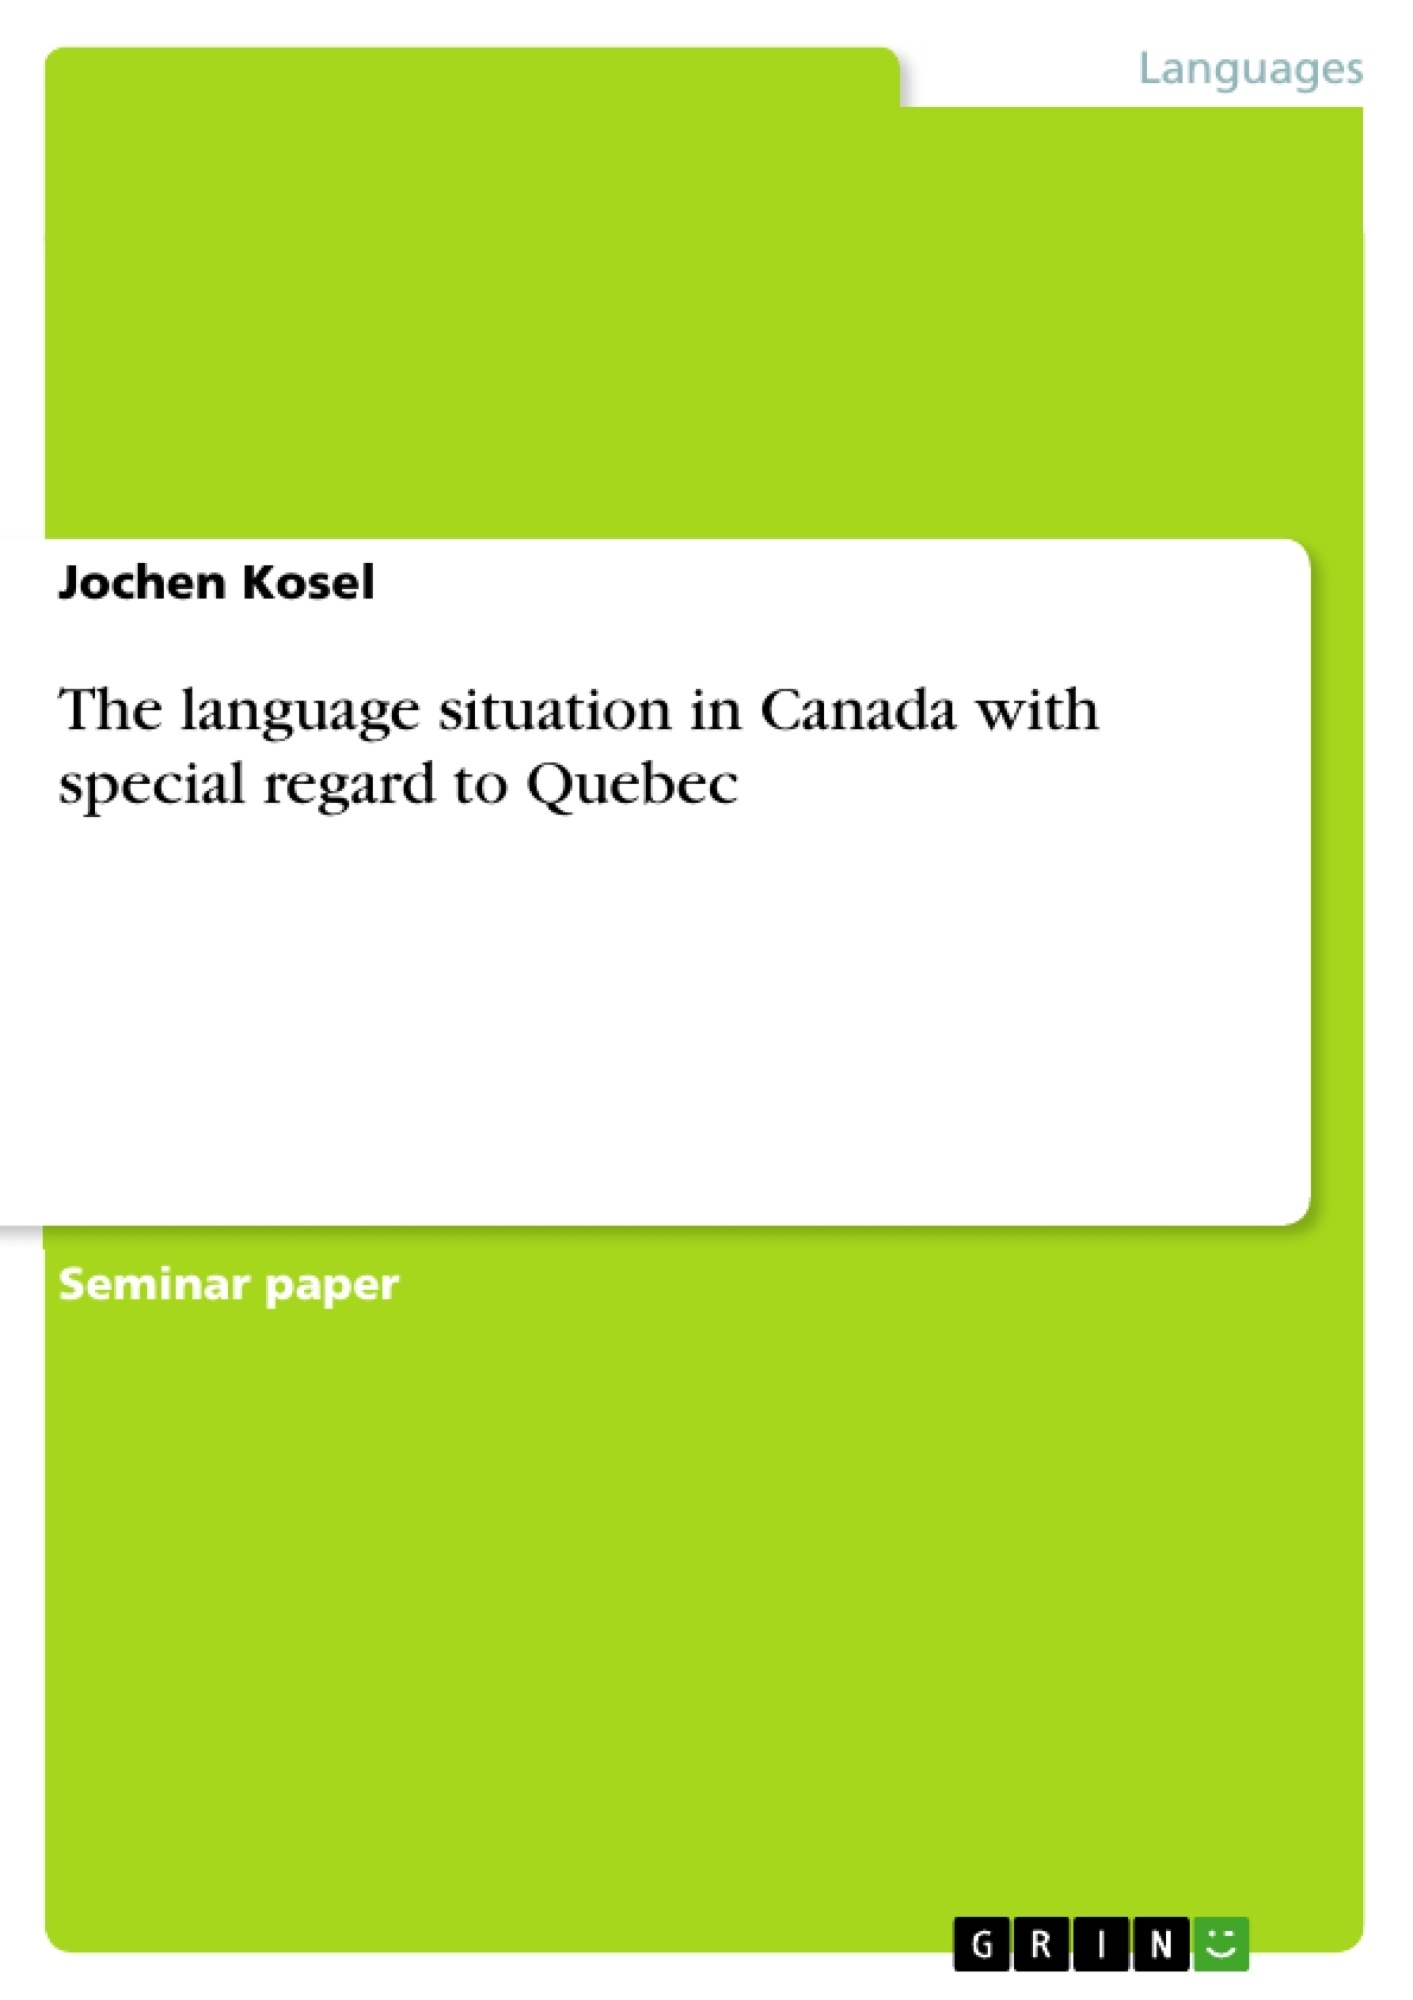 Title: The language situation in Canada with special regard to Quebec